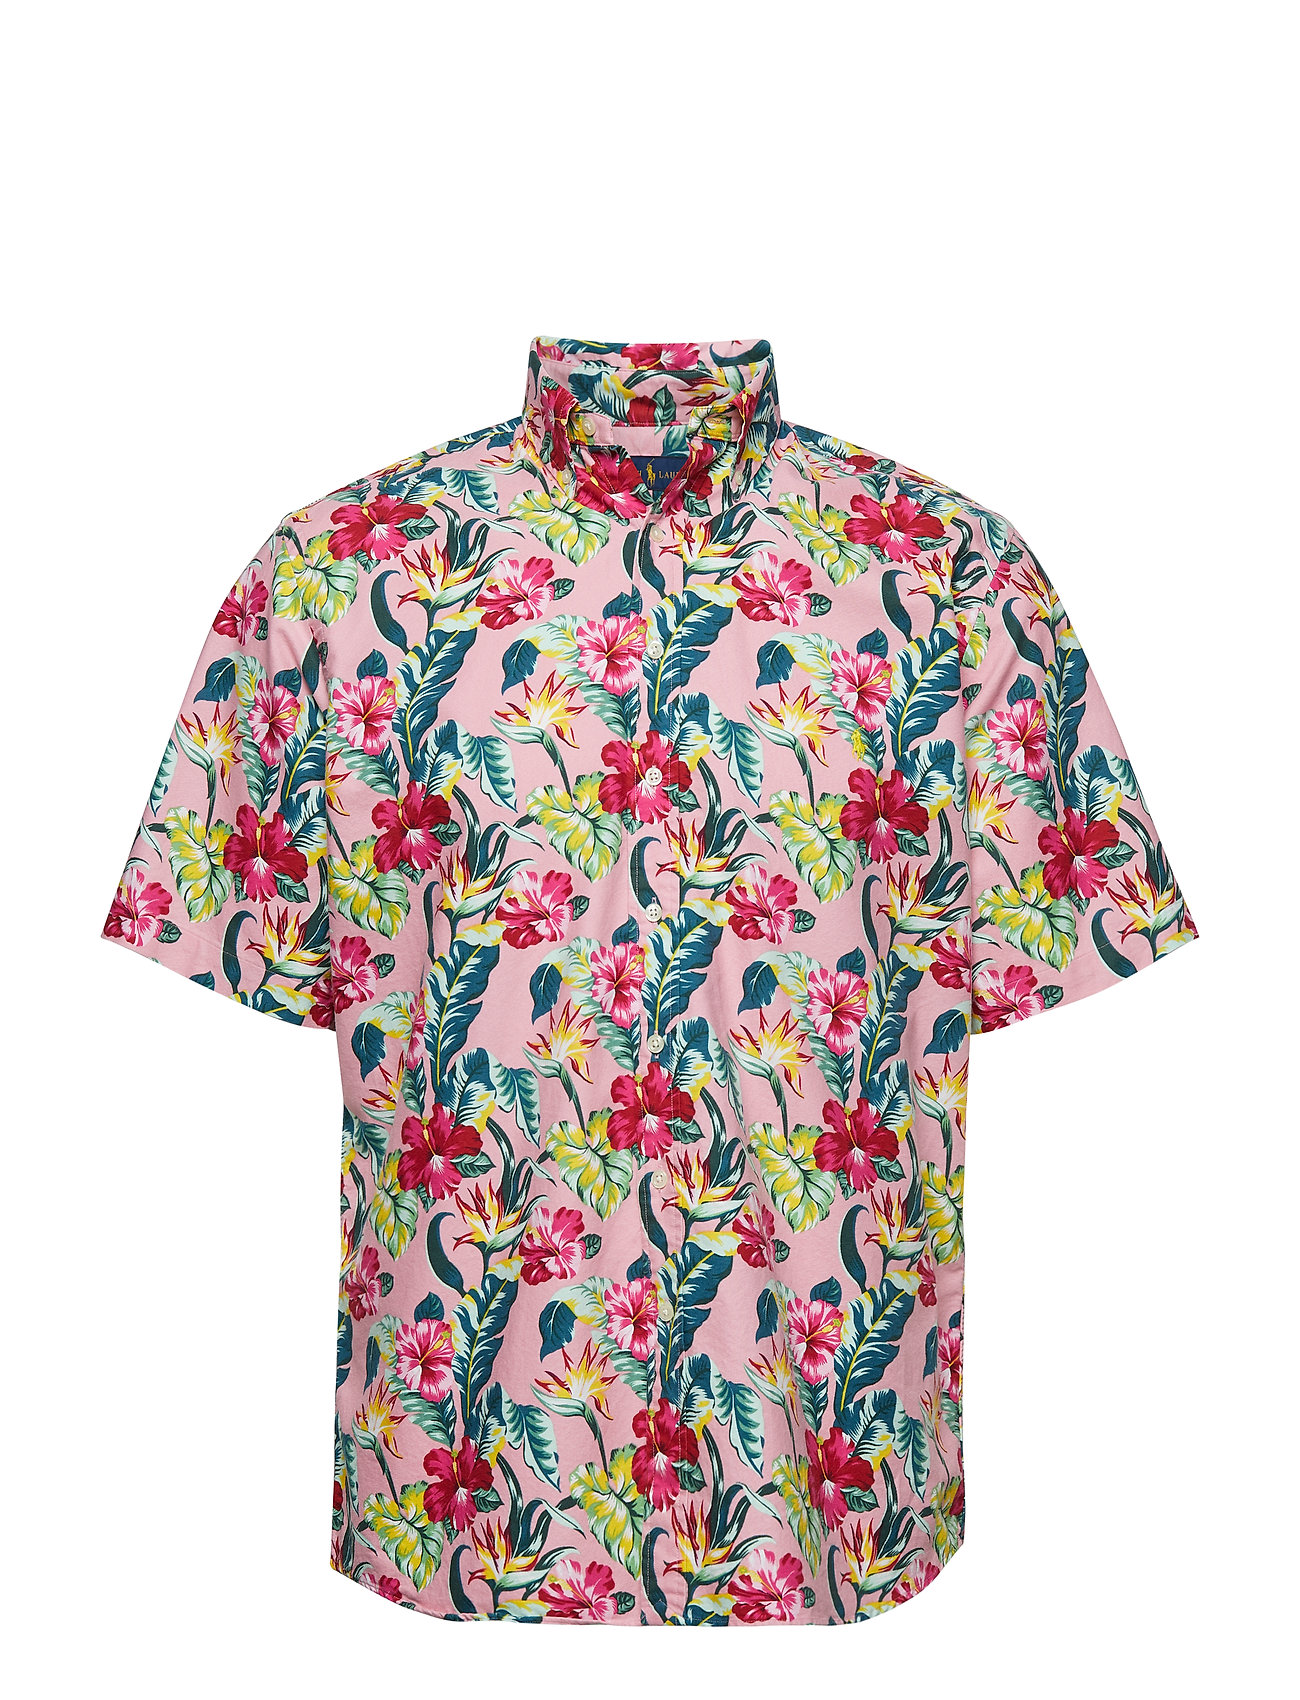 Polo Ralph Lauren Big & Tall Classic Fit Floral Shirt